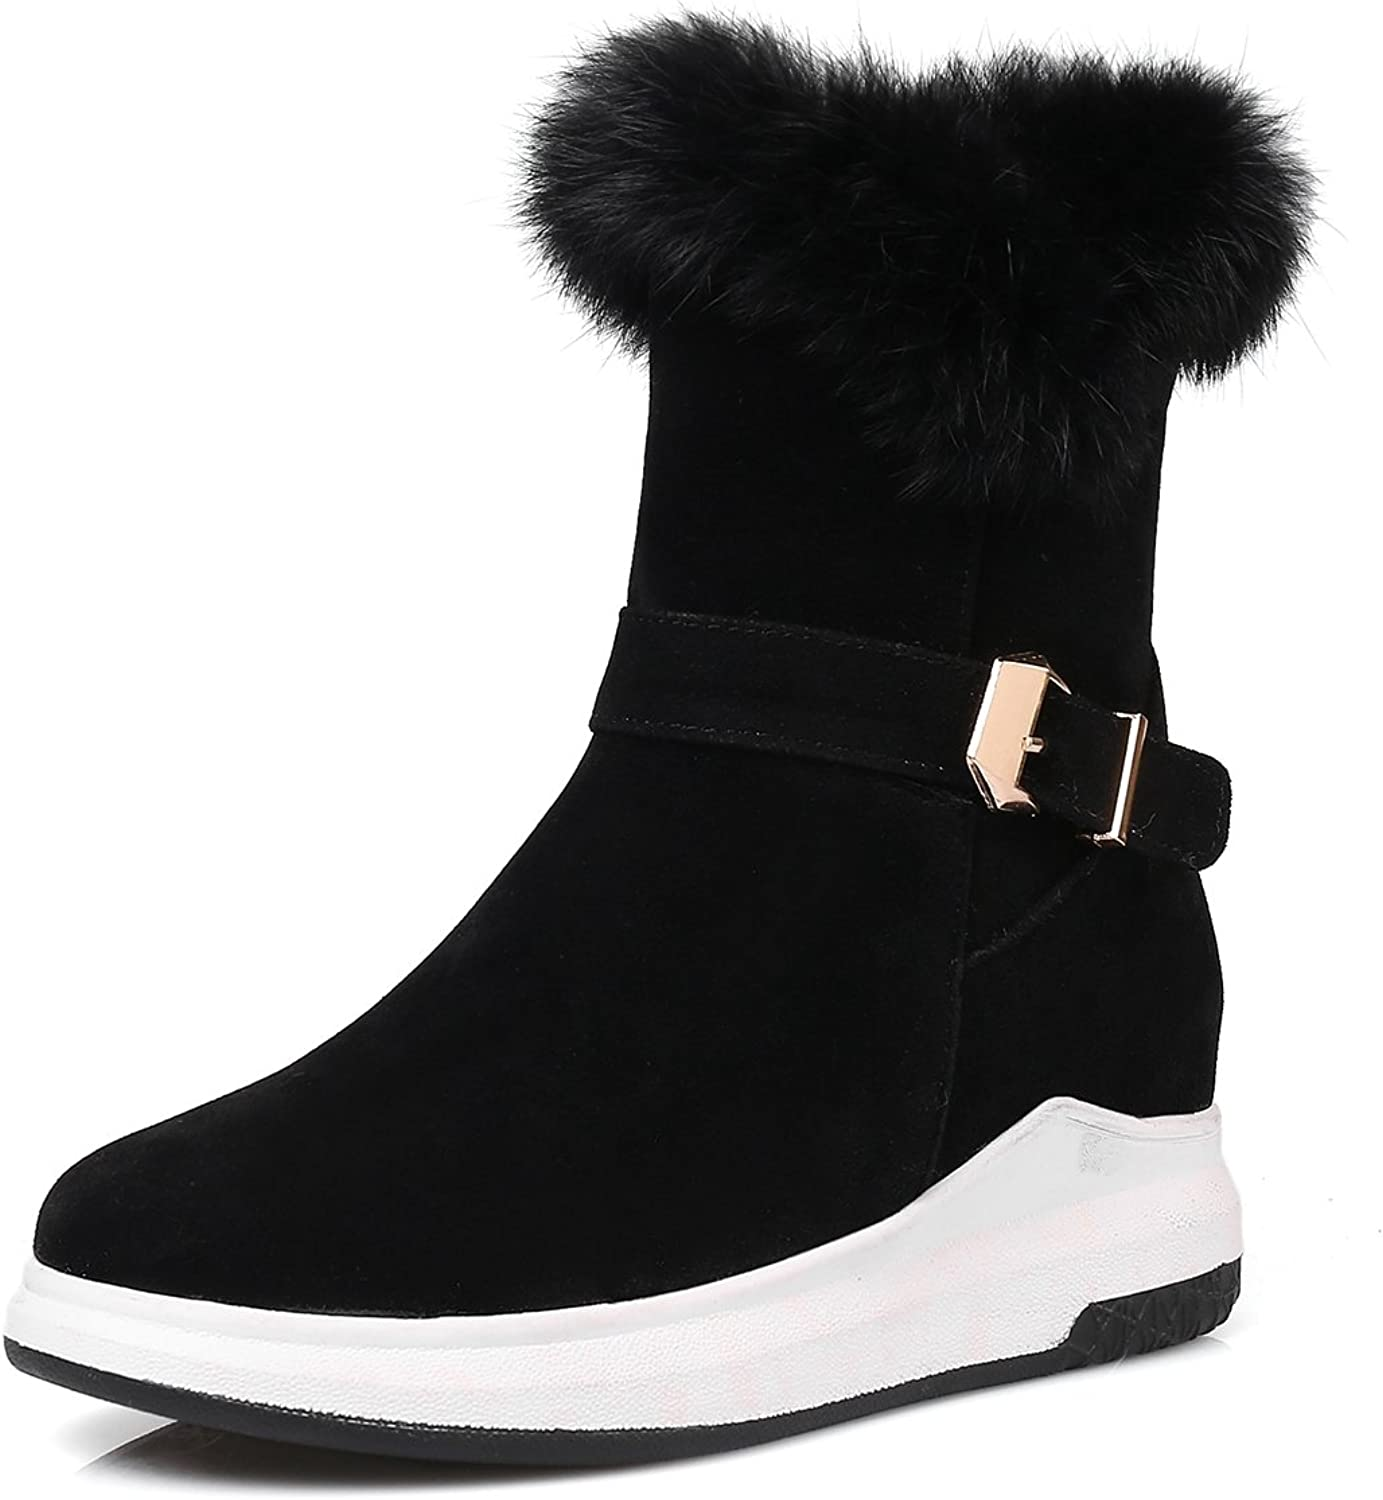 DoraTasia Women's Buckle Strap Round Toe Faux Fur Suede Nubuck Hidden High Wedge Ankle Snow Boots